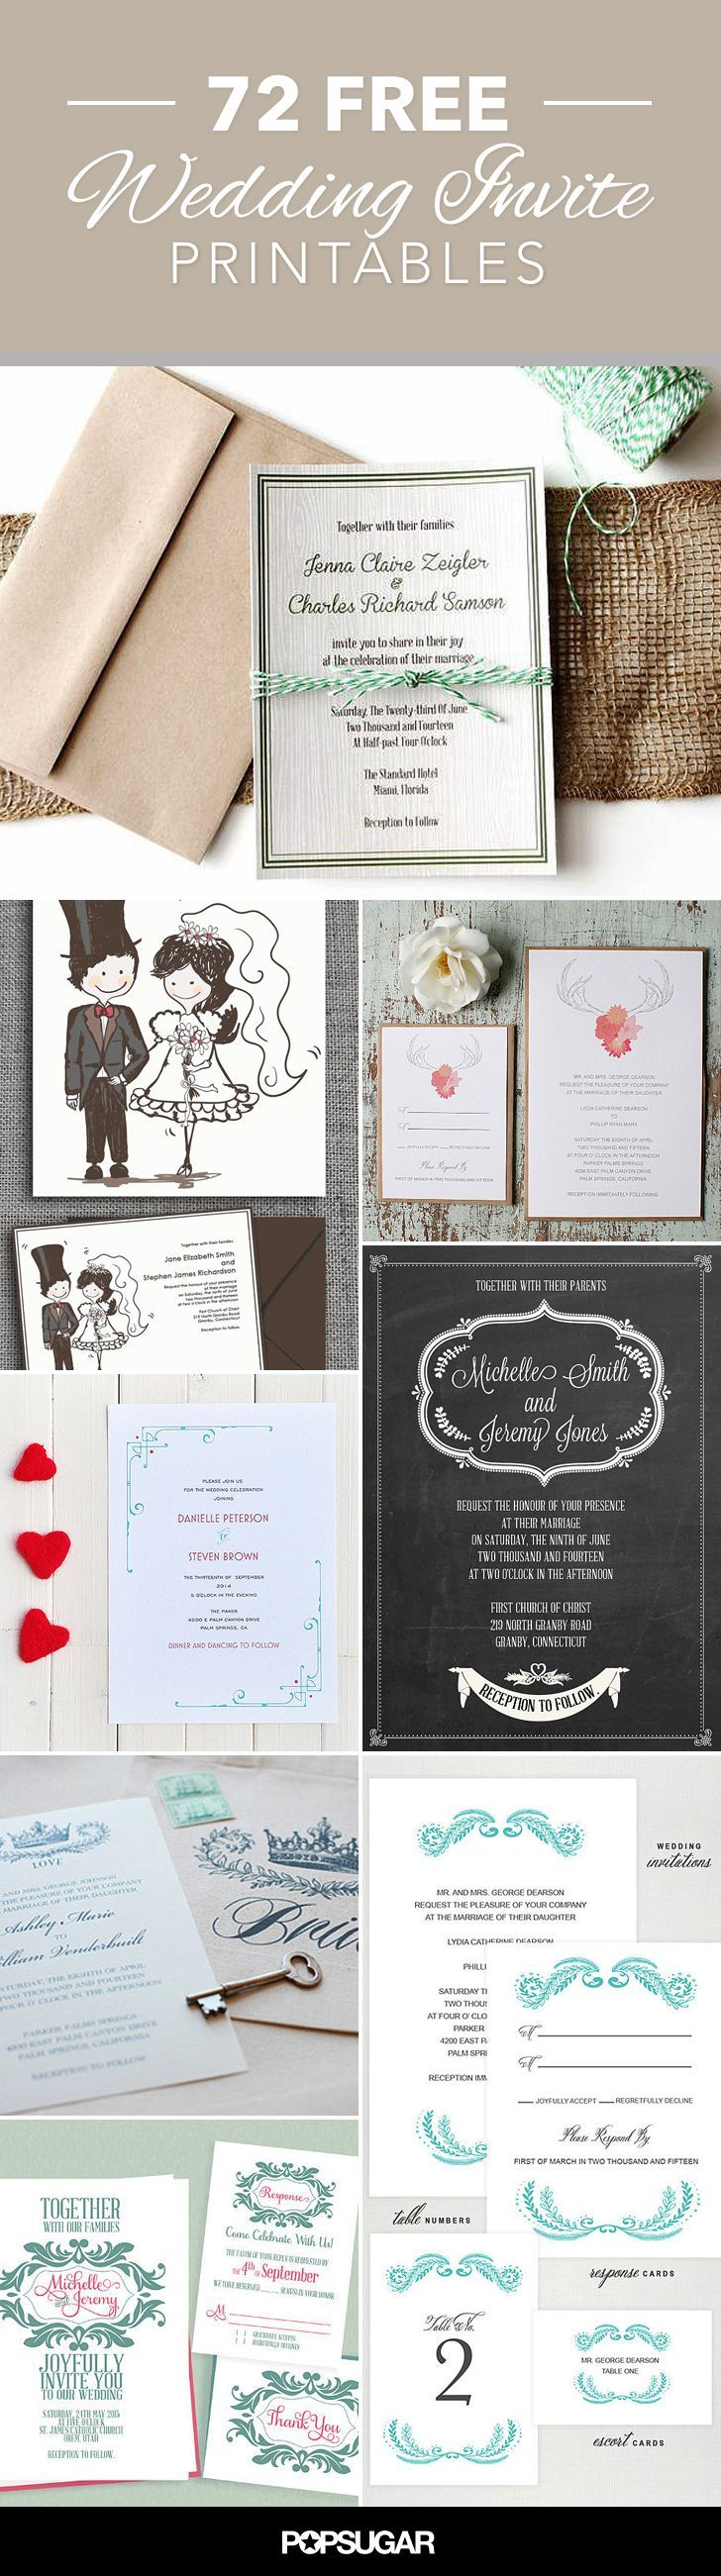 wedding invitations for less than dollar%0A     MORE free wedding printables and DIY wedding downloads   Free wedding     th and Mad